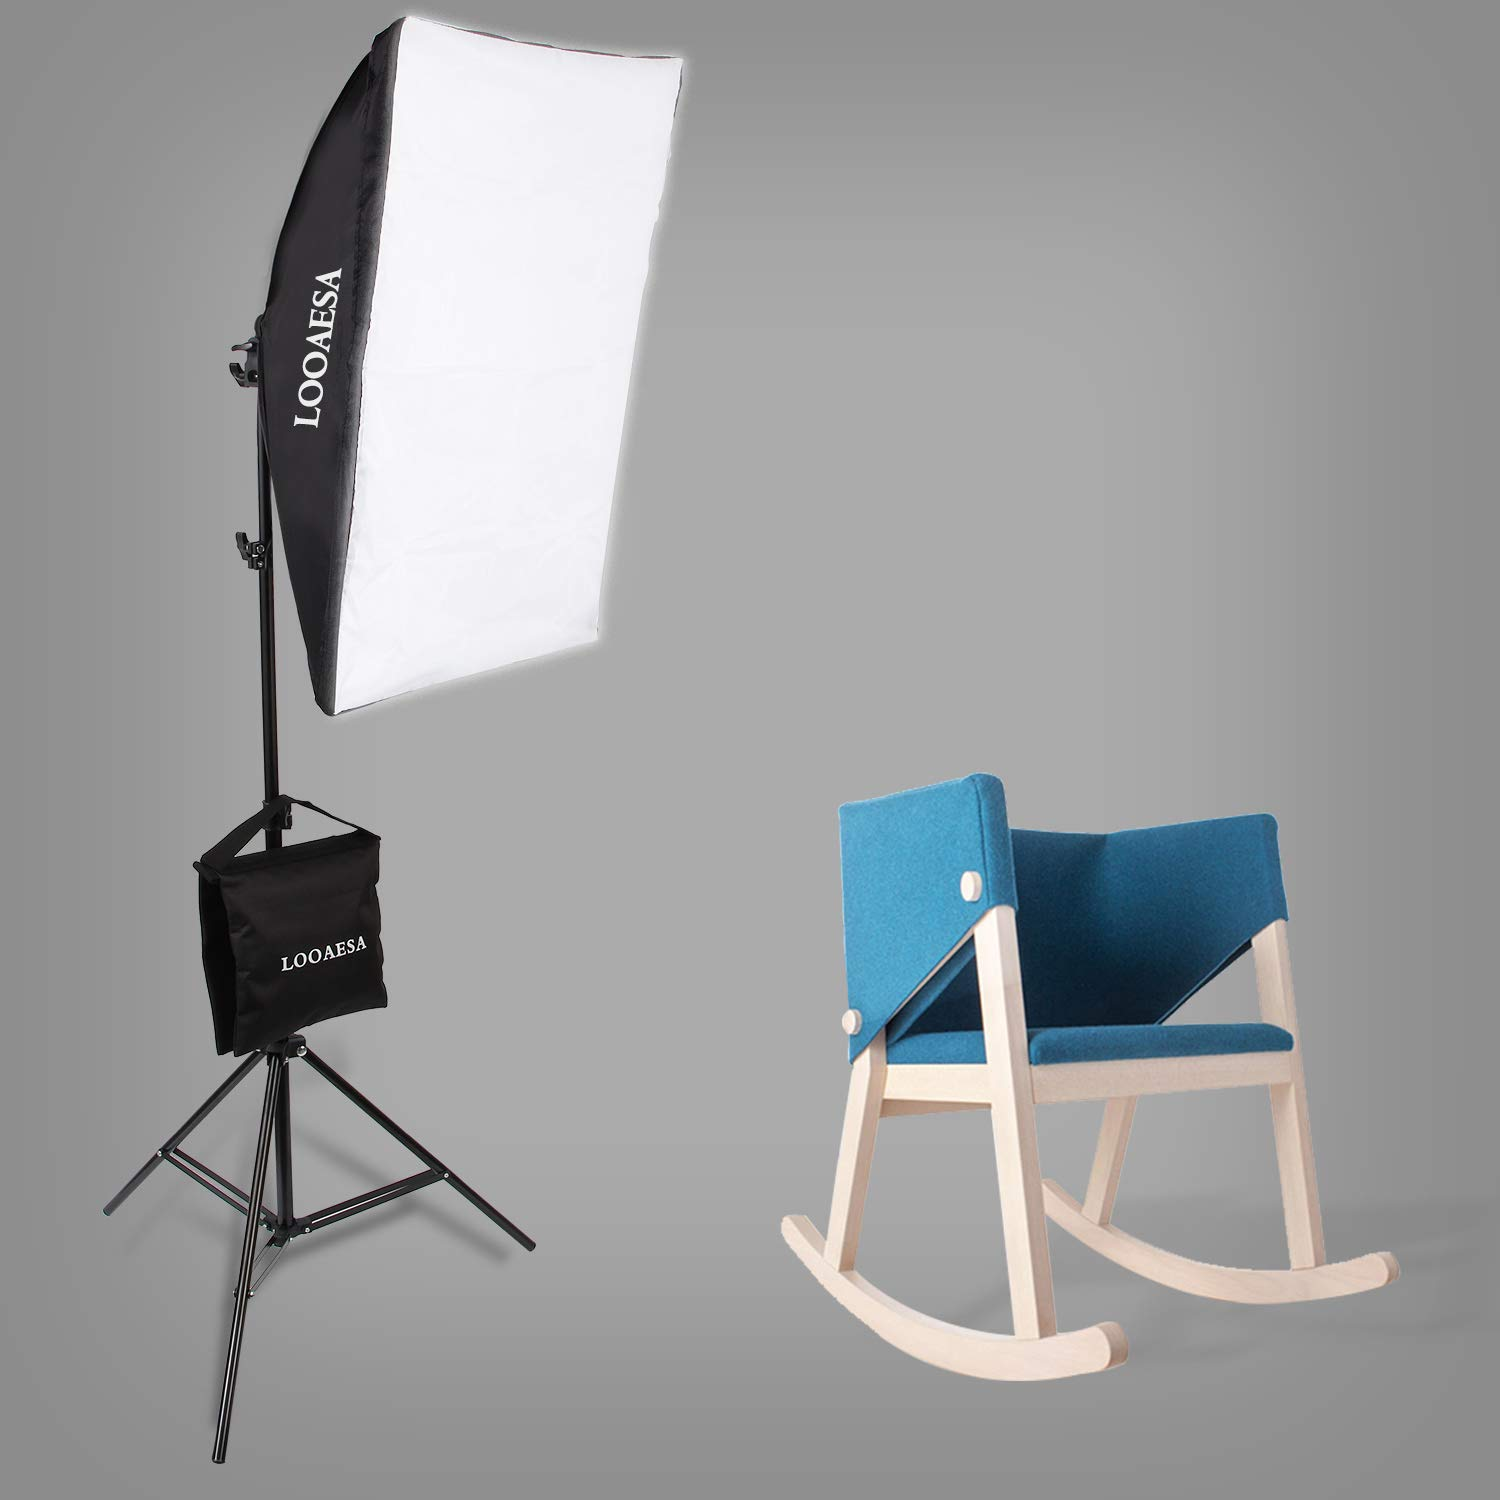 1350W Photography Lighting Softbox Lighting Kit Continuous Photo Video Lighting System with Sandbag and 5500K Bulb 20''X28'' Professional Studio Lights Equipment for Youtube Filming Portraits by LOOAESA by LOOAESA (Image #5)